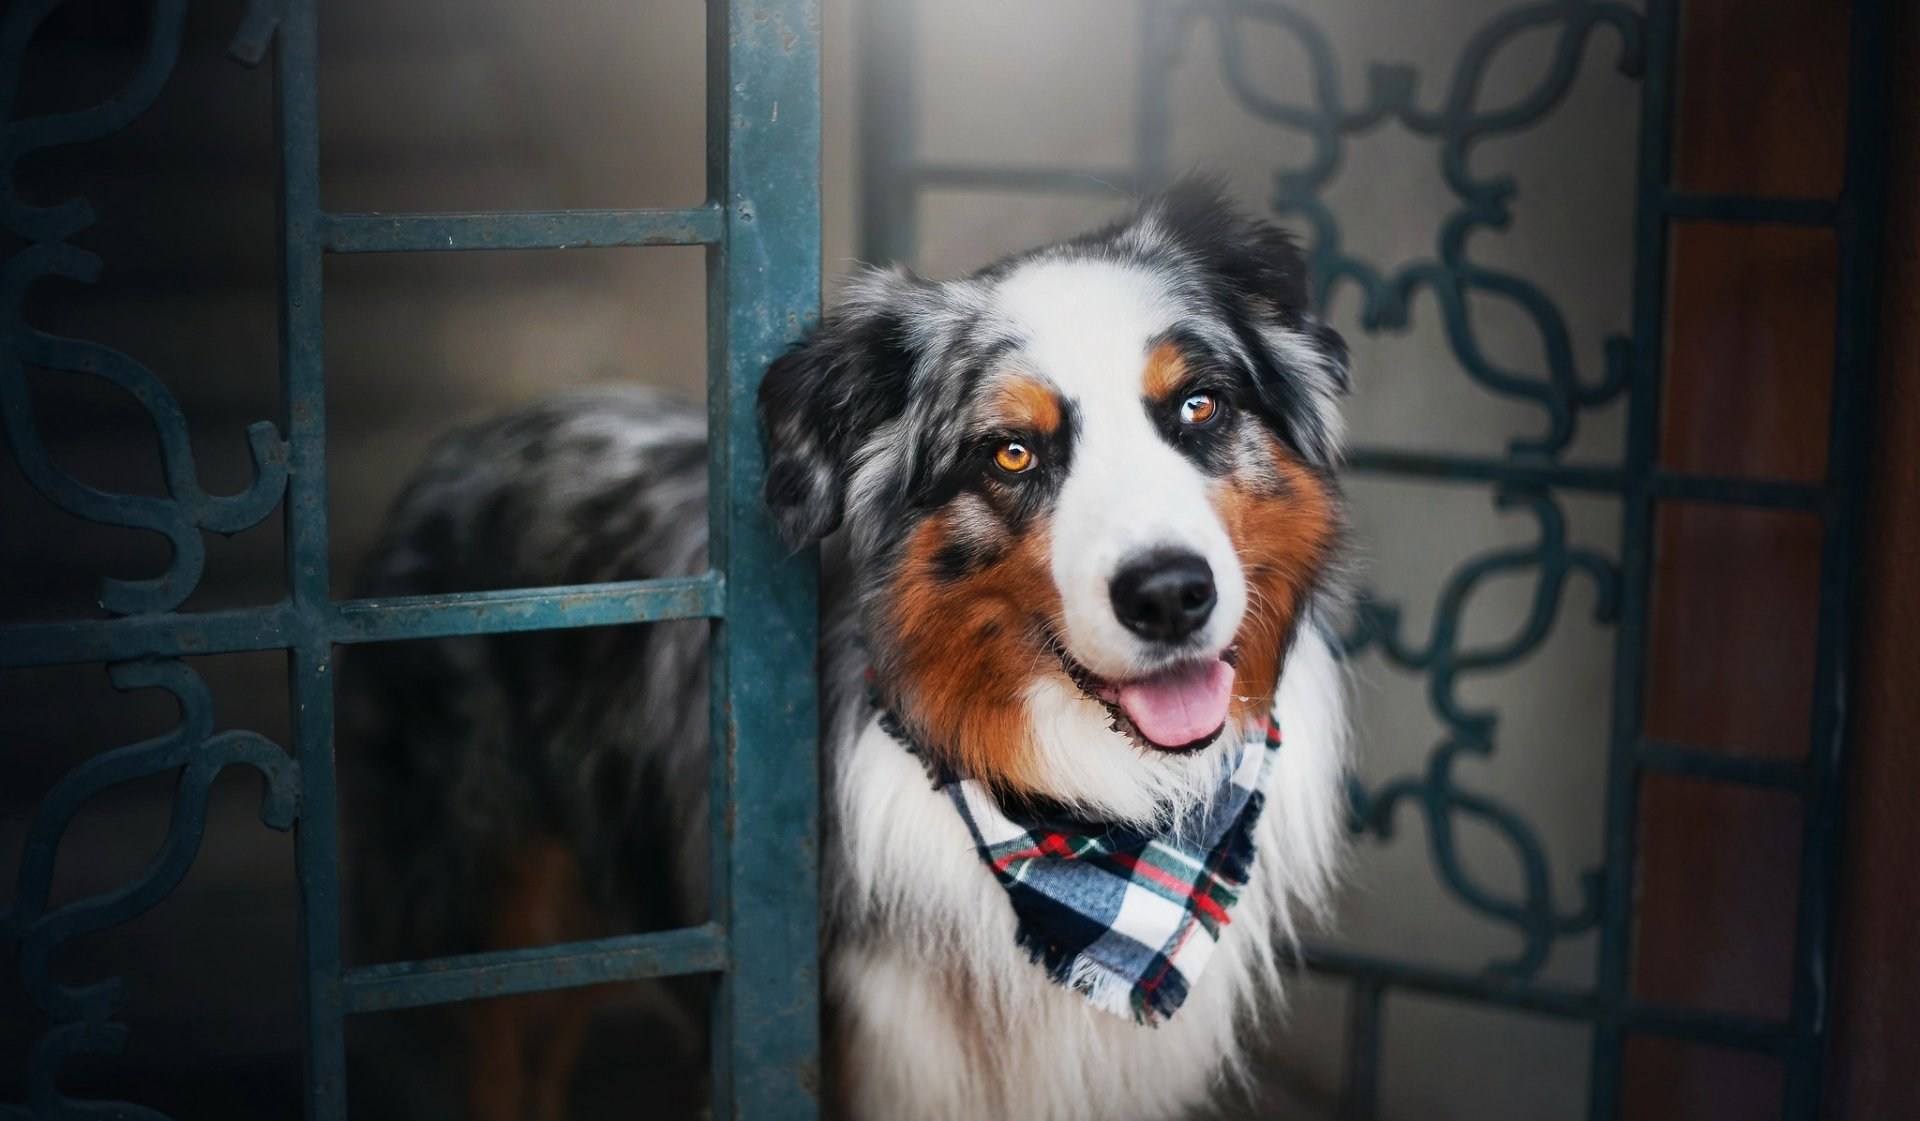 Animal - Australian Shepherd  Dog Pet Wallpaper